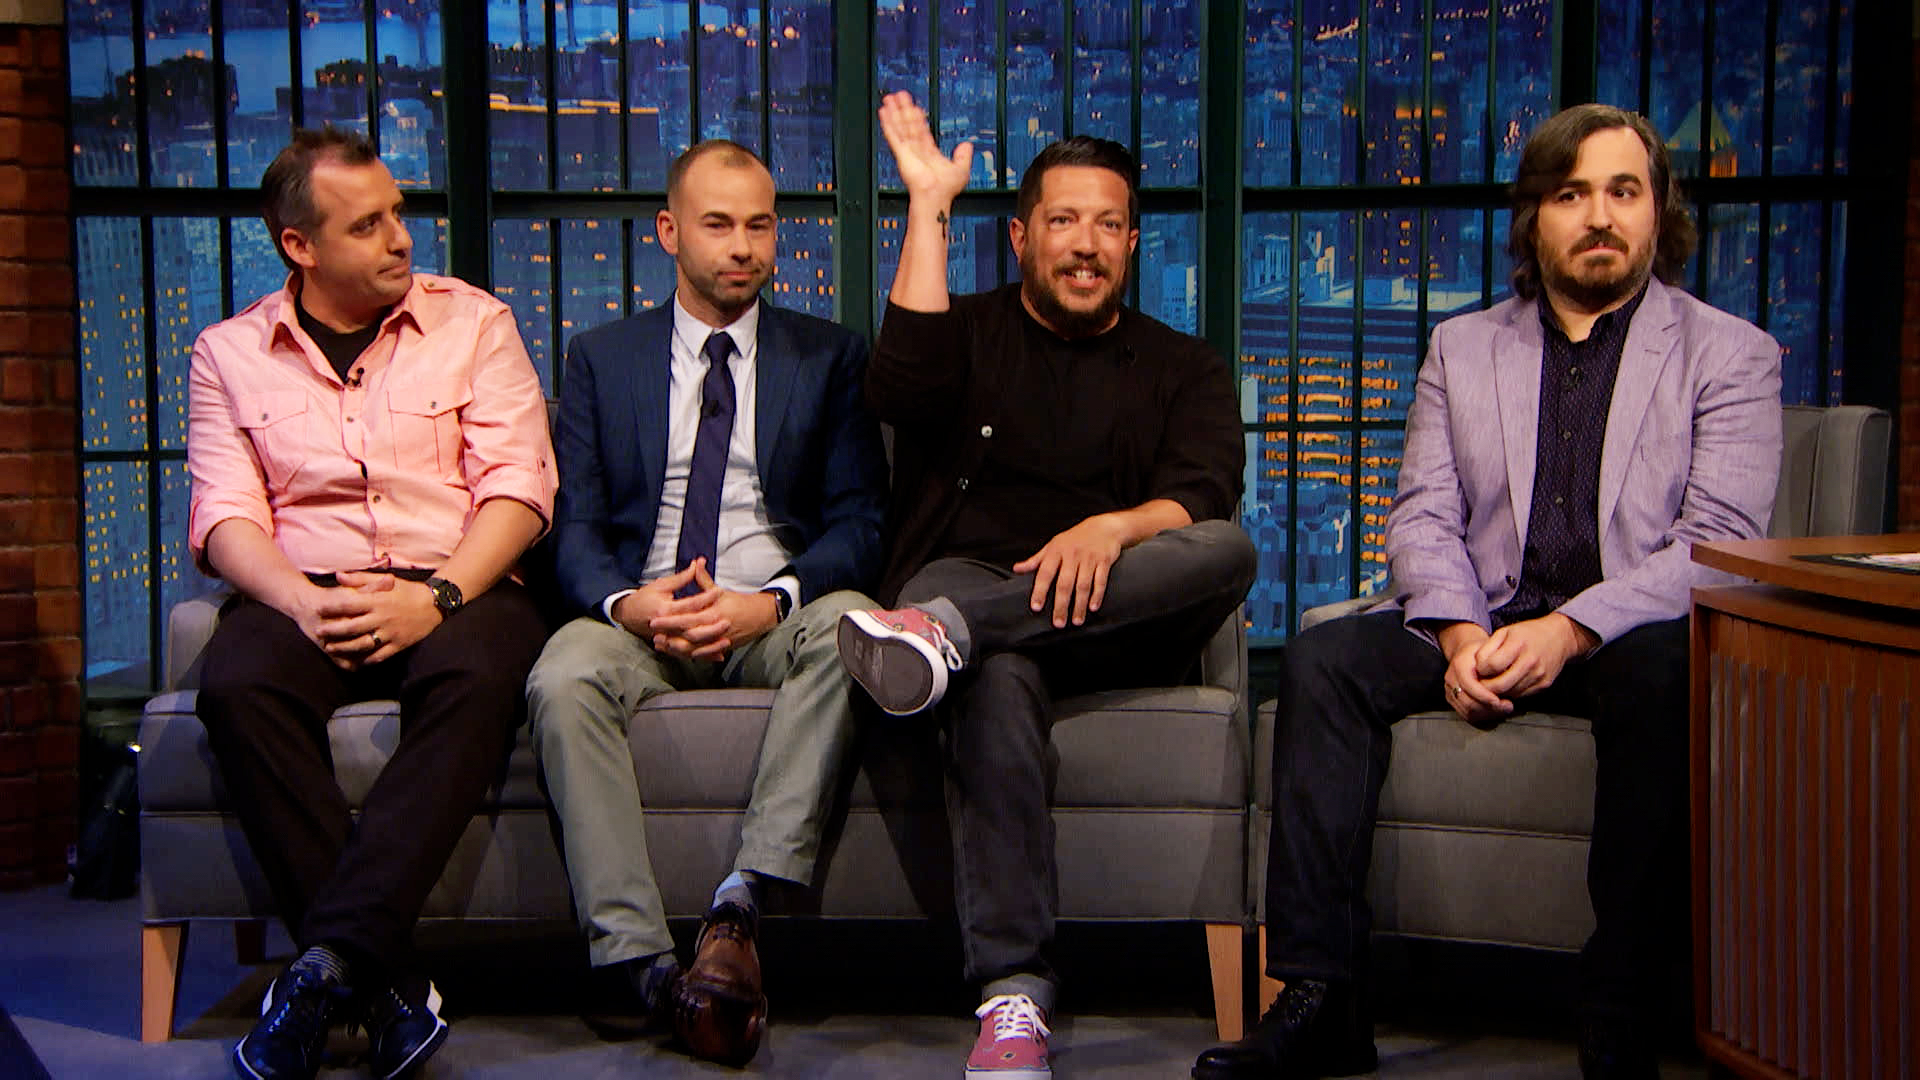 impractical jokers dating Impractical jokers have definitely helped sal to built up a solid career in comedy, as it did for rest of the jokers from performing in different comedy clubs in the states to touring different countries, sal has been one of the favorite jokers among the four he enjoys a huge net worth of $400,000 (estimated.